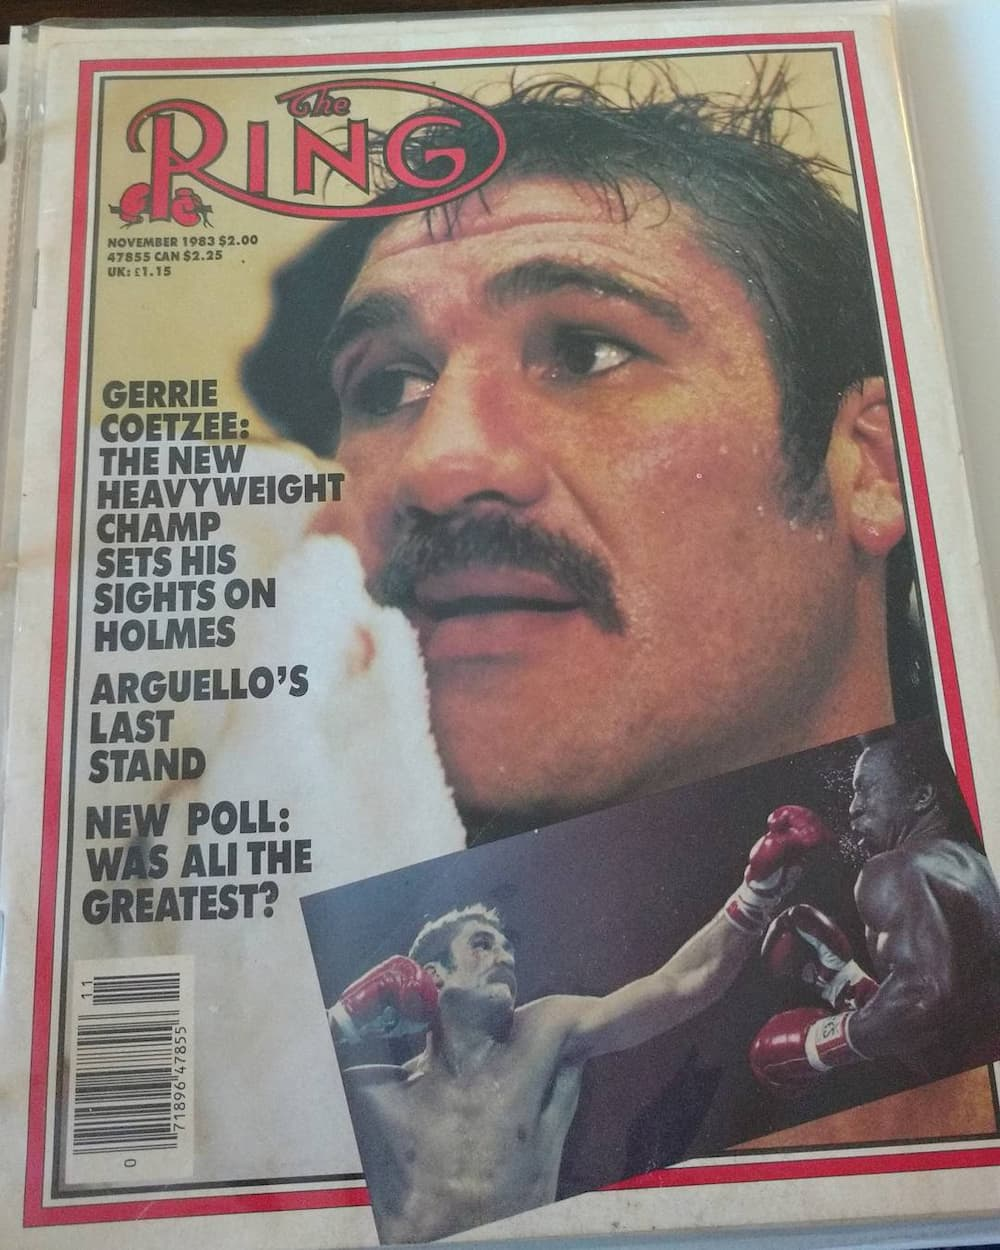 Gerrie Coetzee age, measurements, children, wife, martial arts, total fights, wins/loses, facts and where is he today